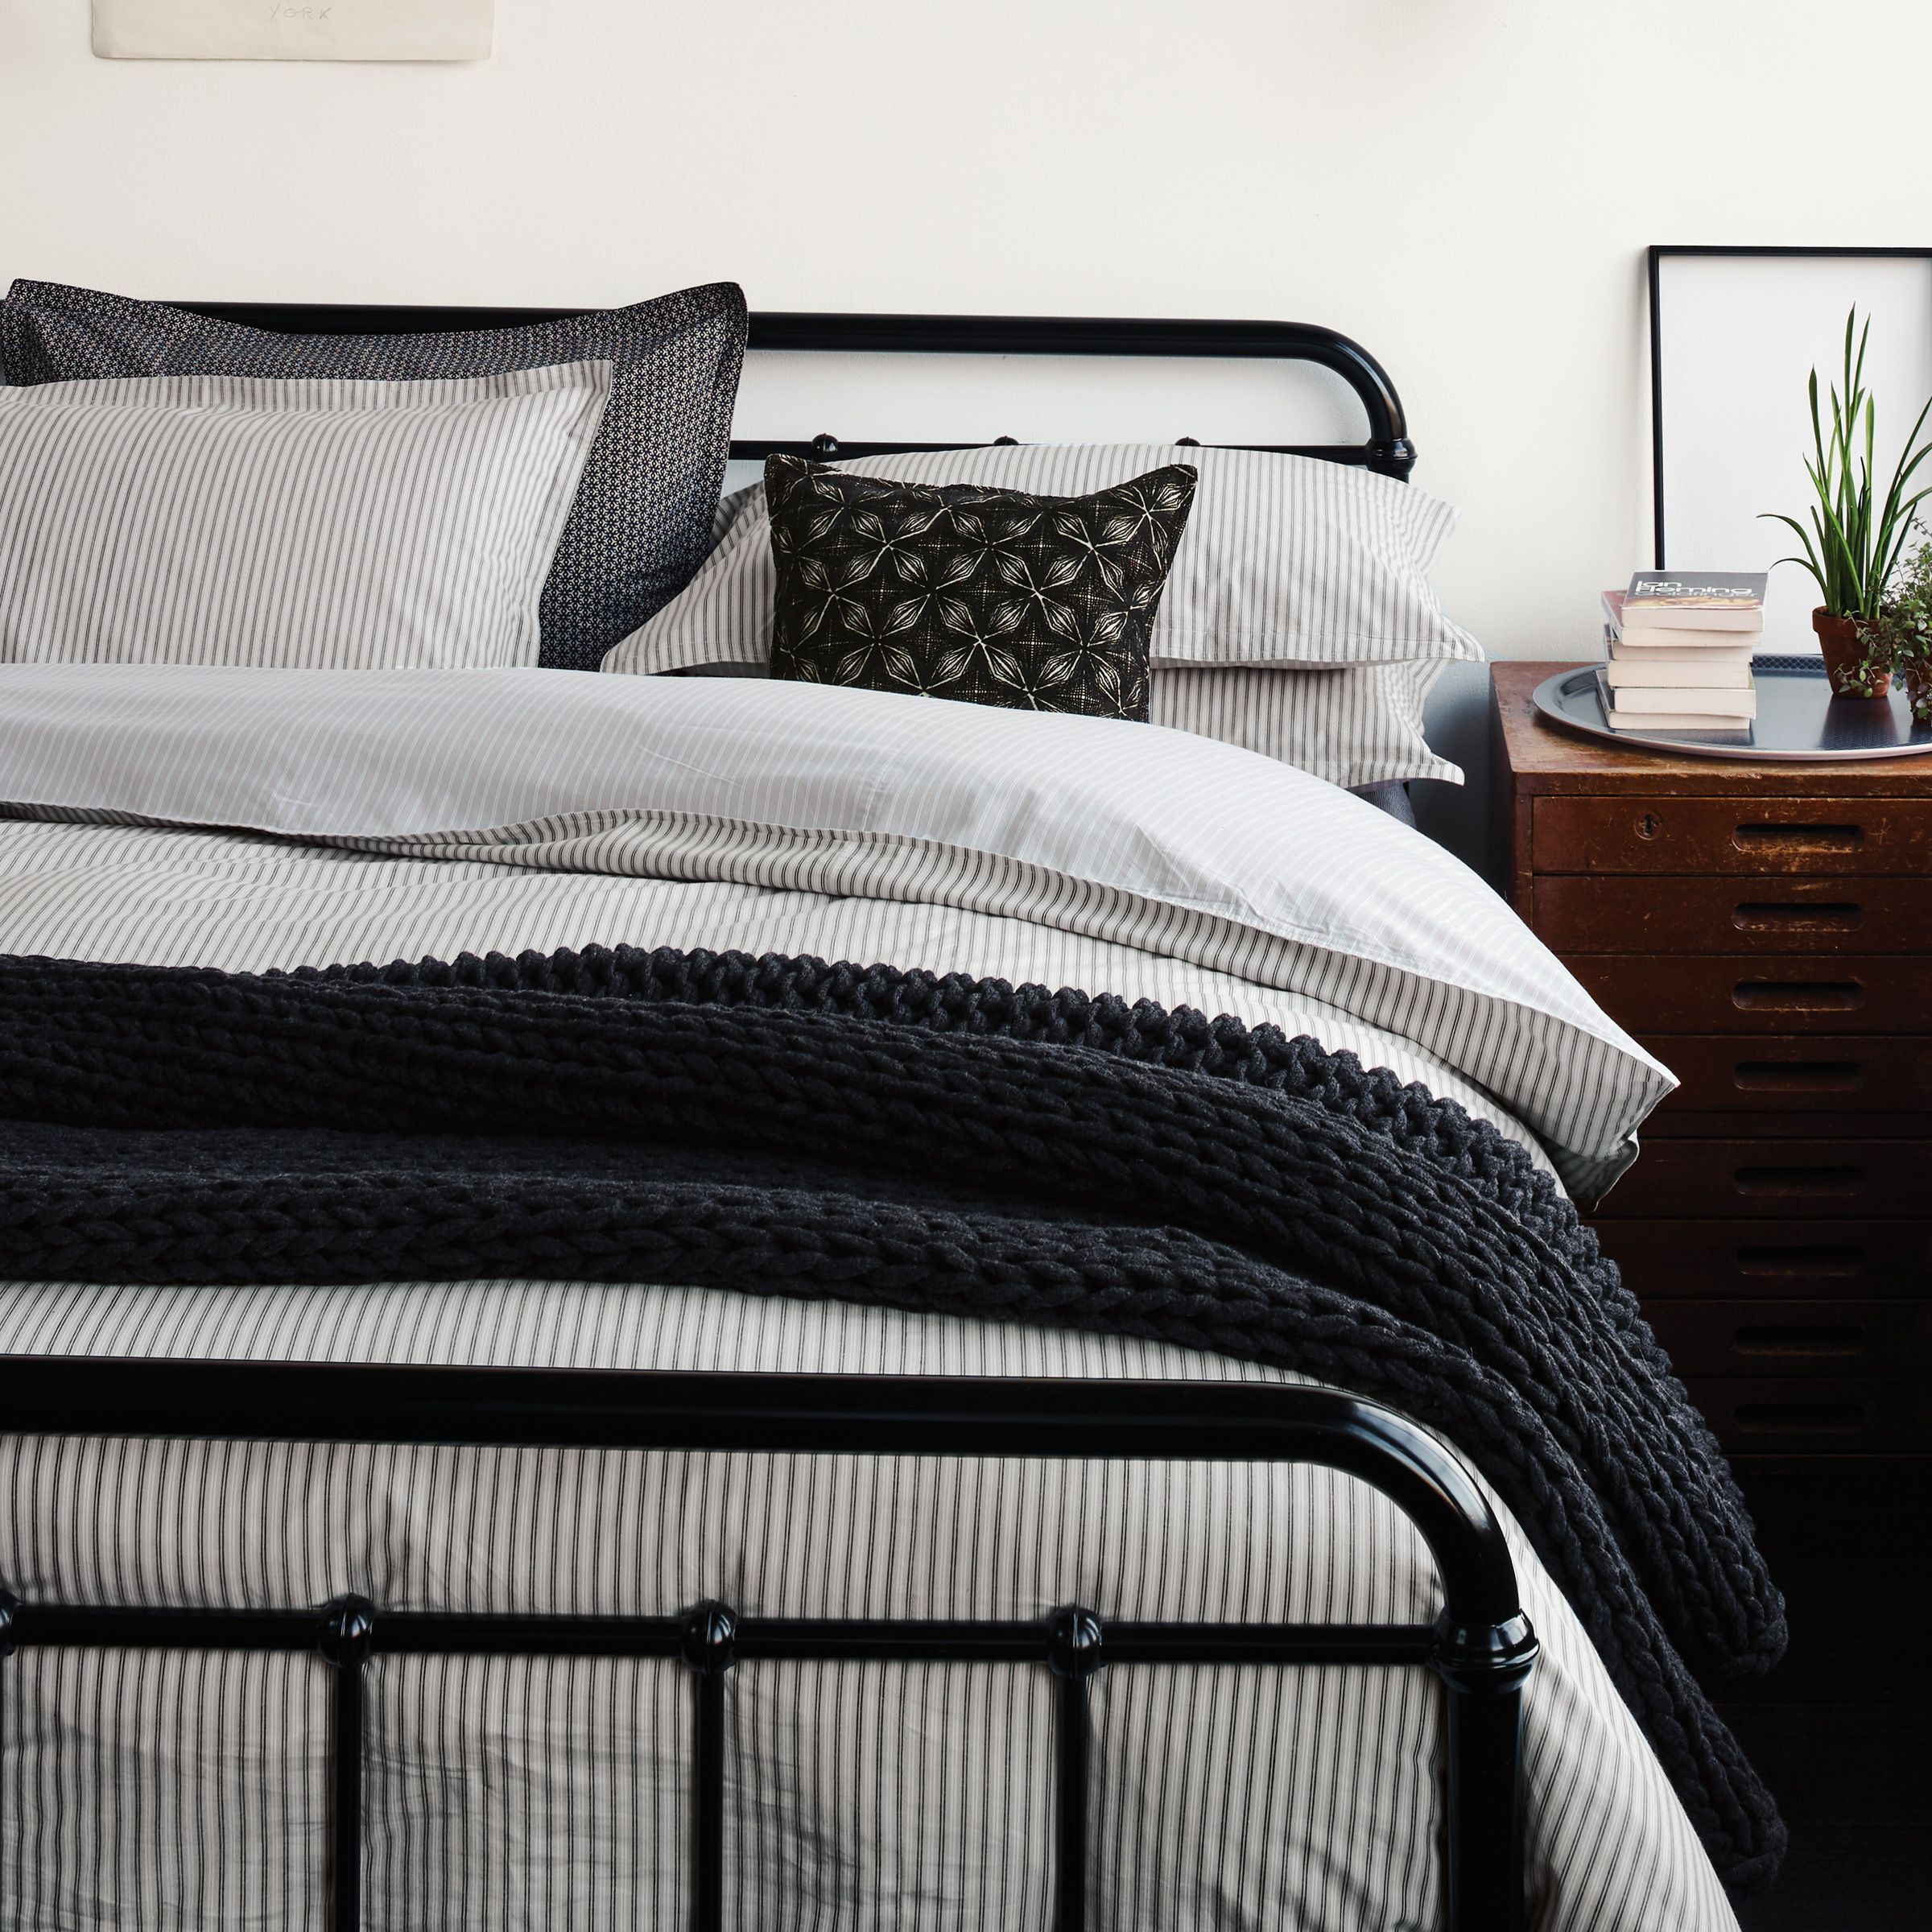 The Pinterest Proven Formula For The Ultimate Cozy Bedroom: Murmur Ticking Stripe Bedding In Charcoal & Linen